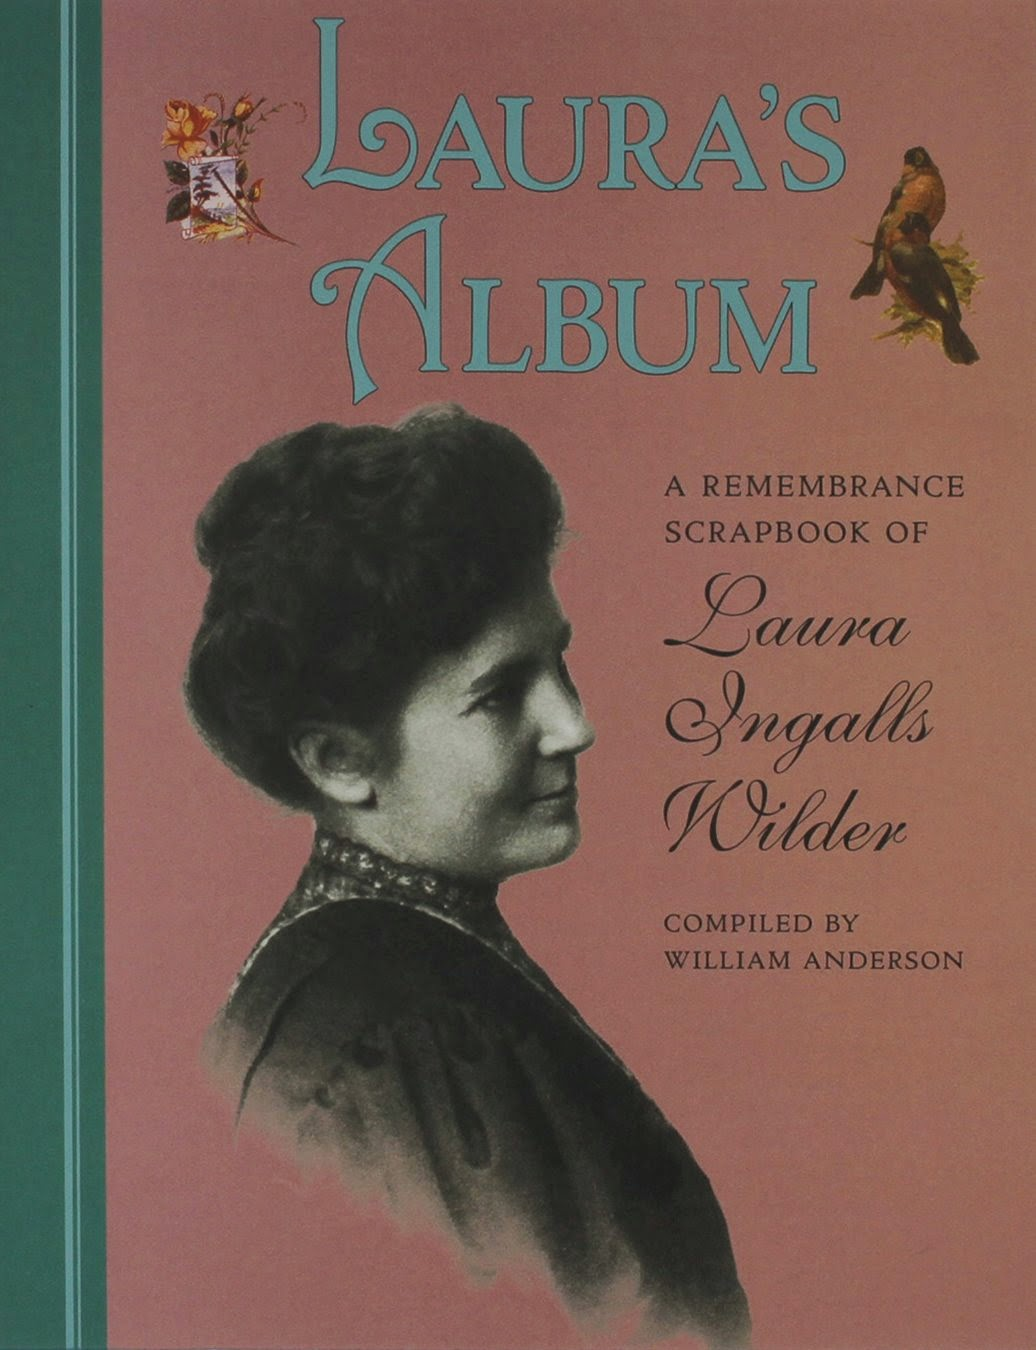 Laura's Album: A Remembrance Scrapbook of Laura Ingalls Wilder provides fans, both young and old, with photographs, writings, and additional memorabilia from Laura's life.